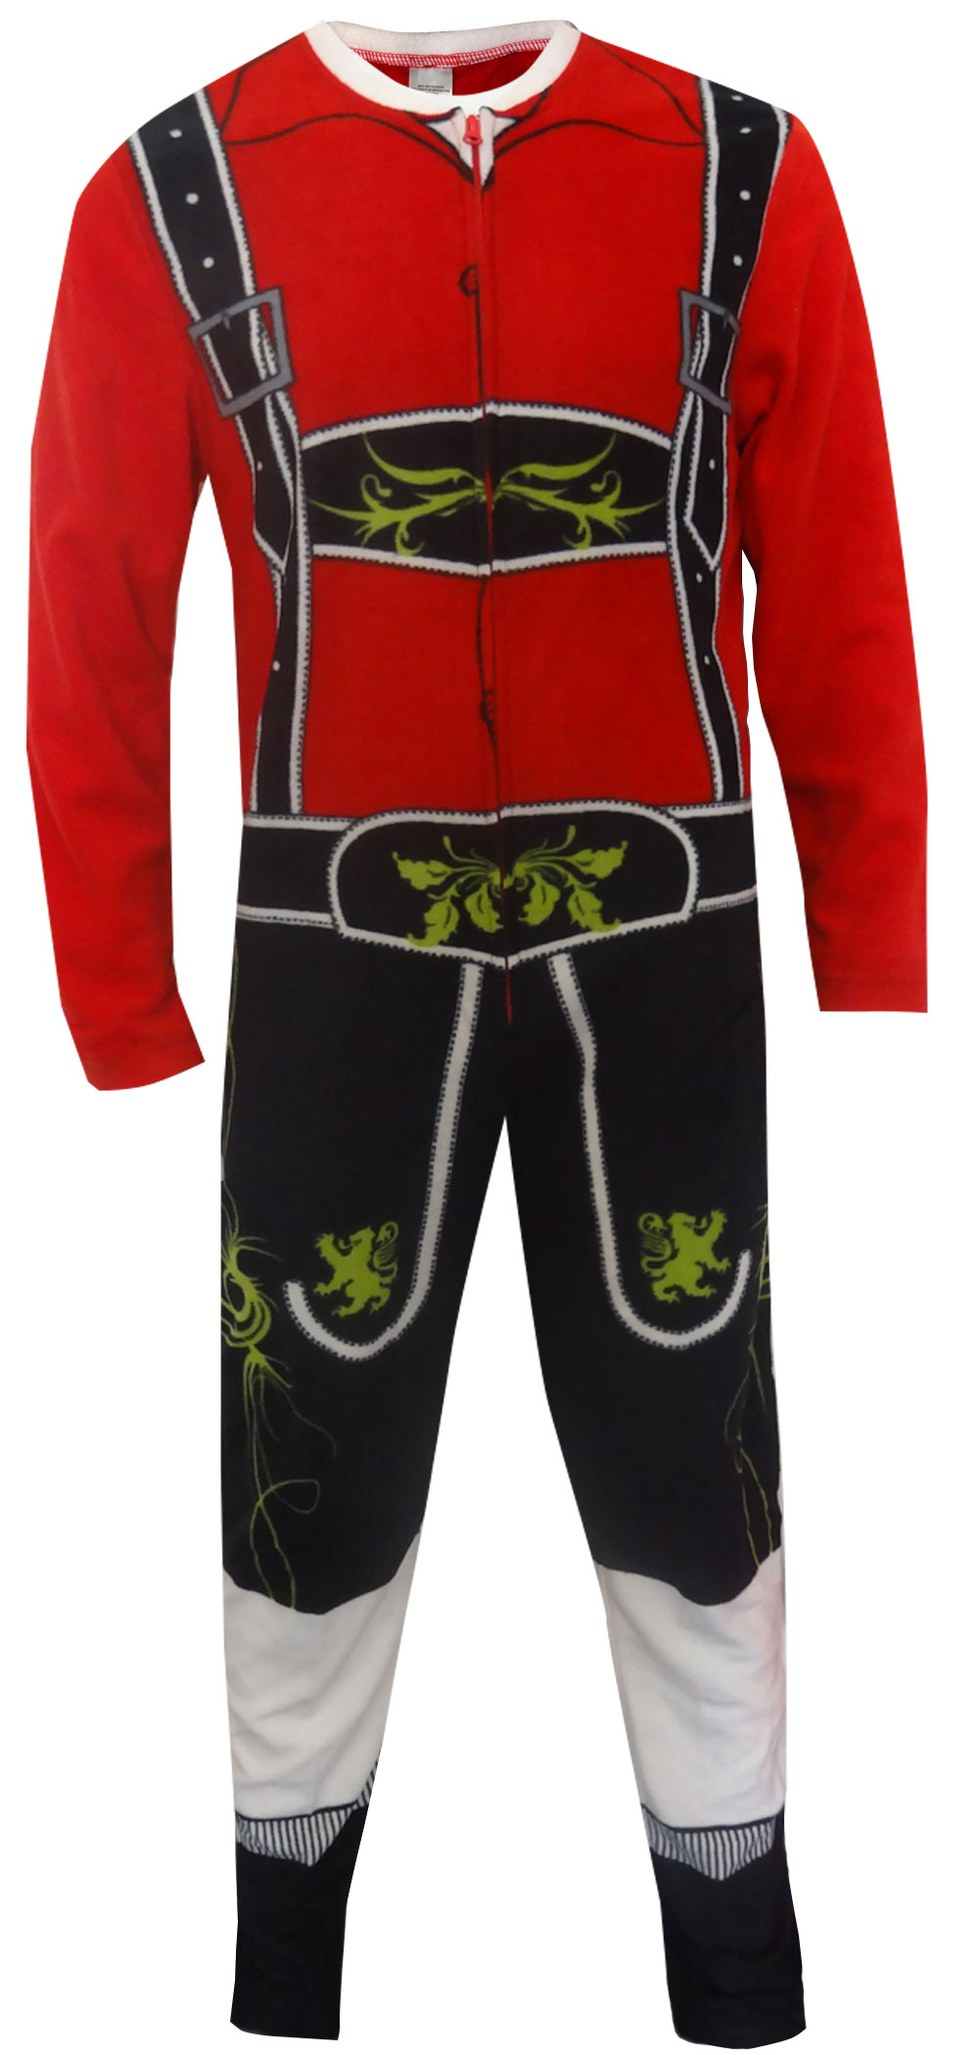 13 pajamas that double as halloween costumes - Halloween Costumes Kennesaw Ga